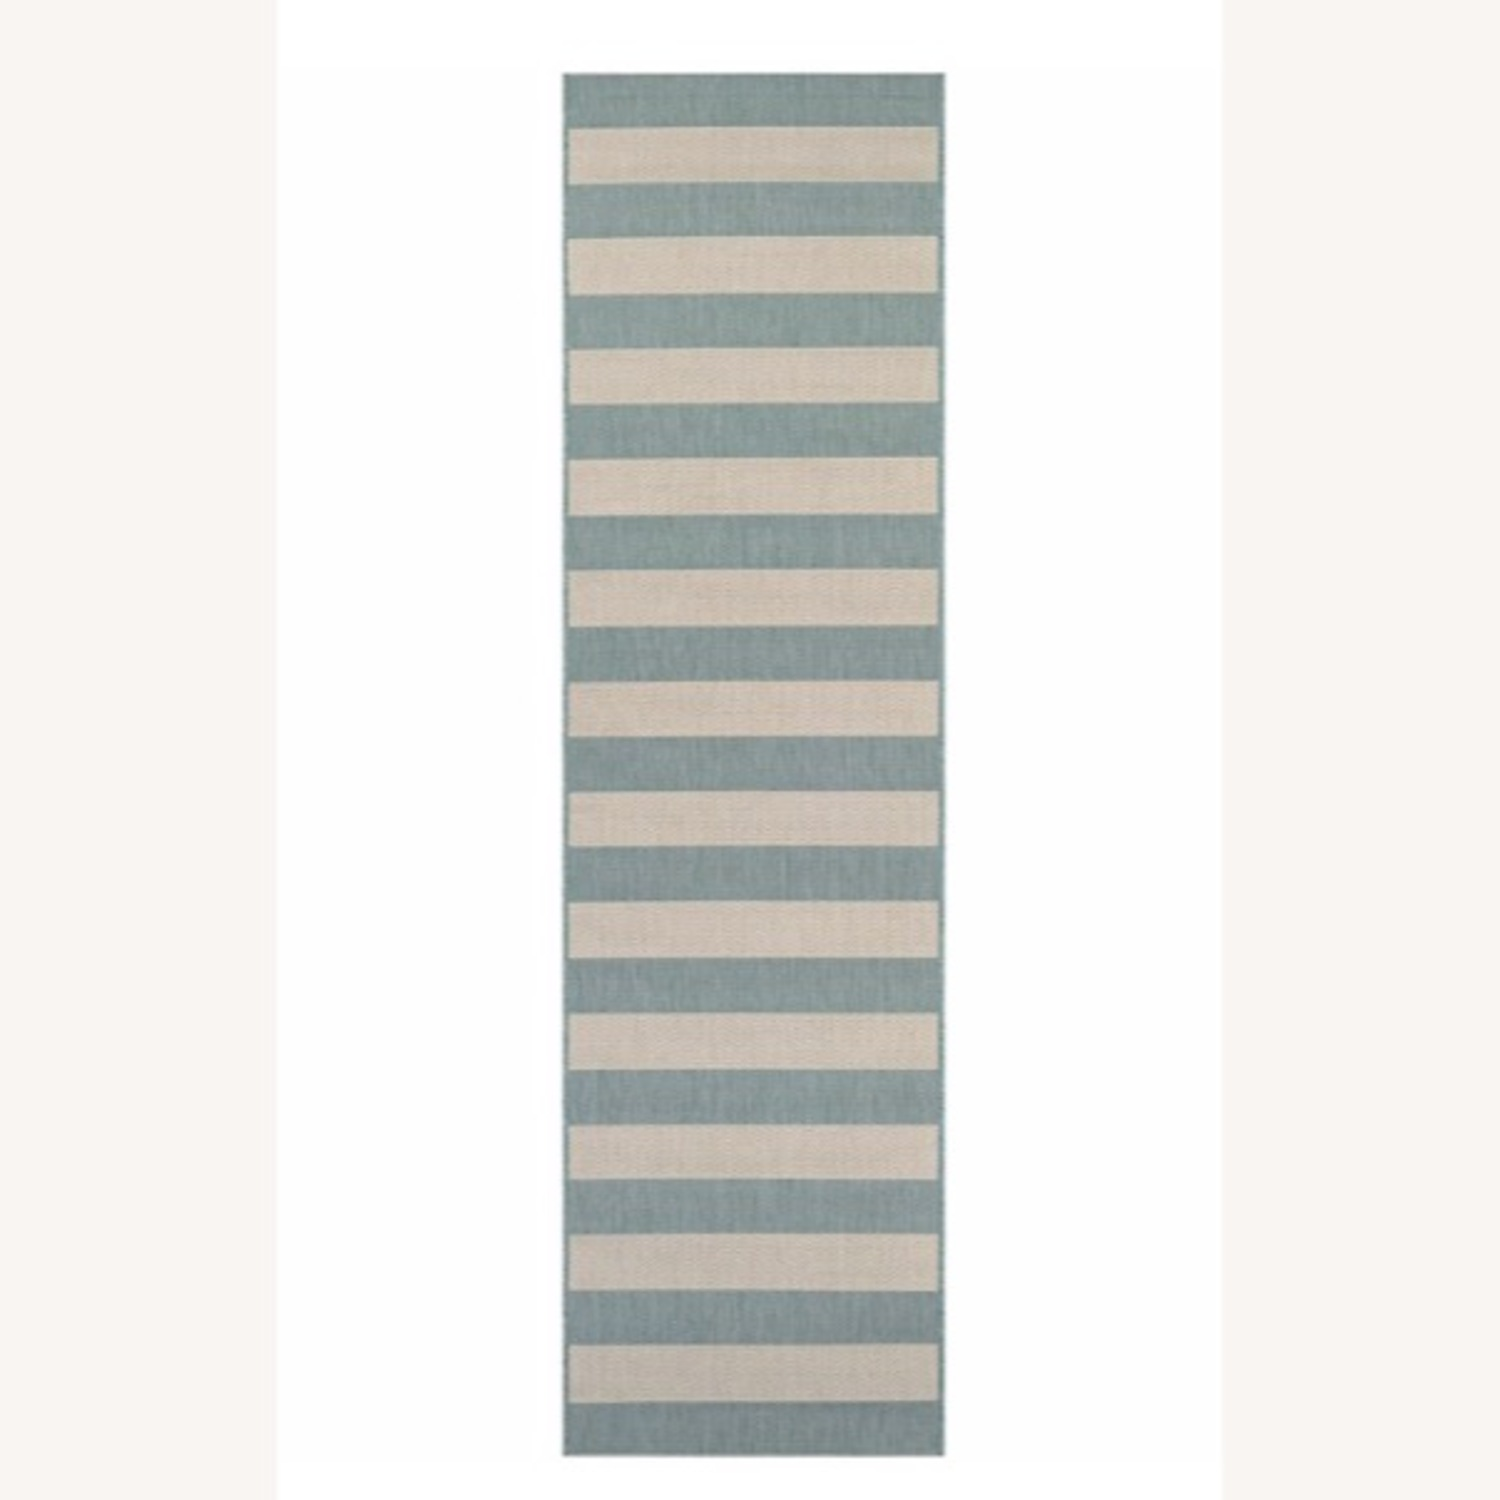 Blue and White Striped 7-Foot Runner Rug - image-1